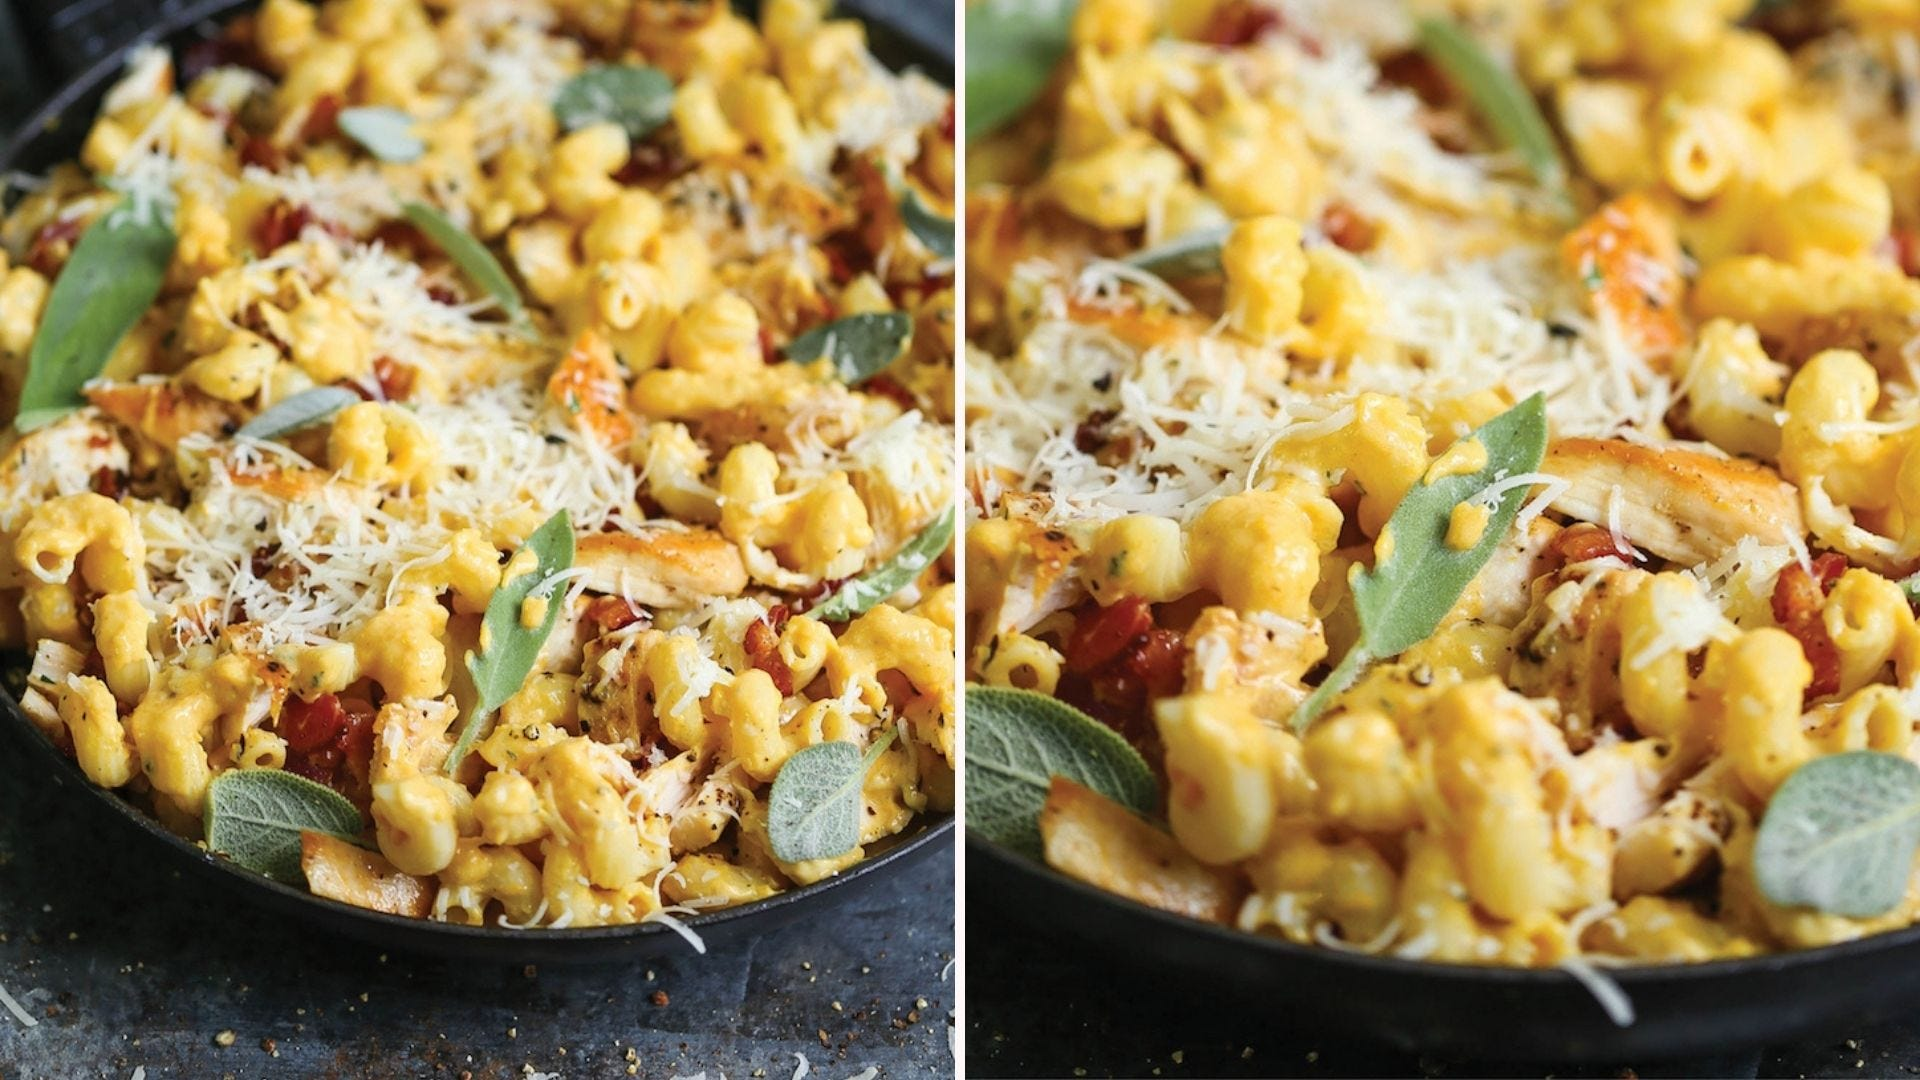 Two side by side images: the left image is of cavatappi pasta coated with a butternut squash alfredo sauce, chopped chicken breast and topped with fresh sage leaves and parmesan cheese. The right image is a close up view of the left image.